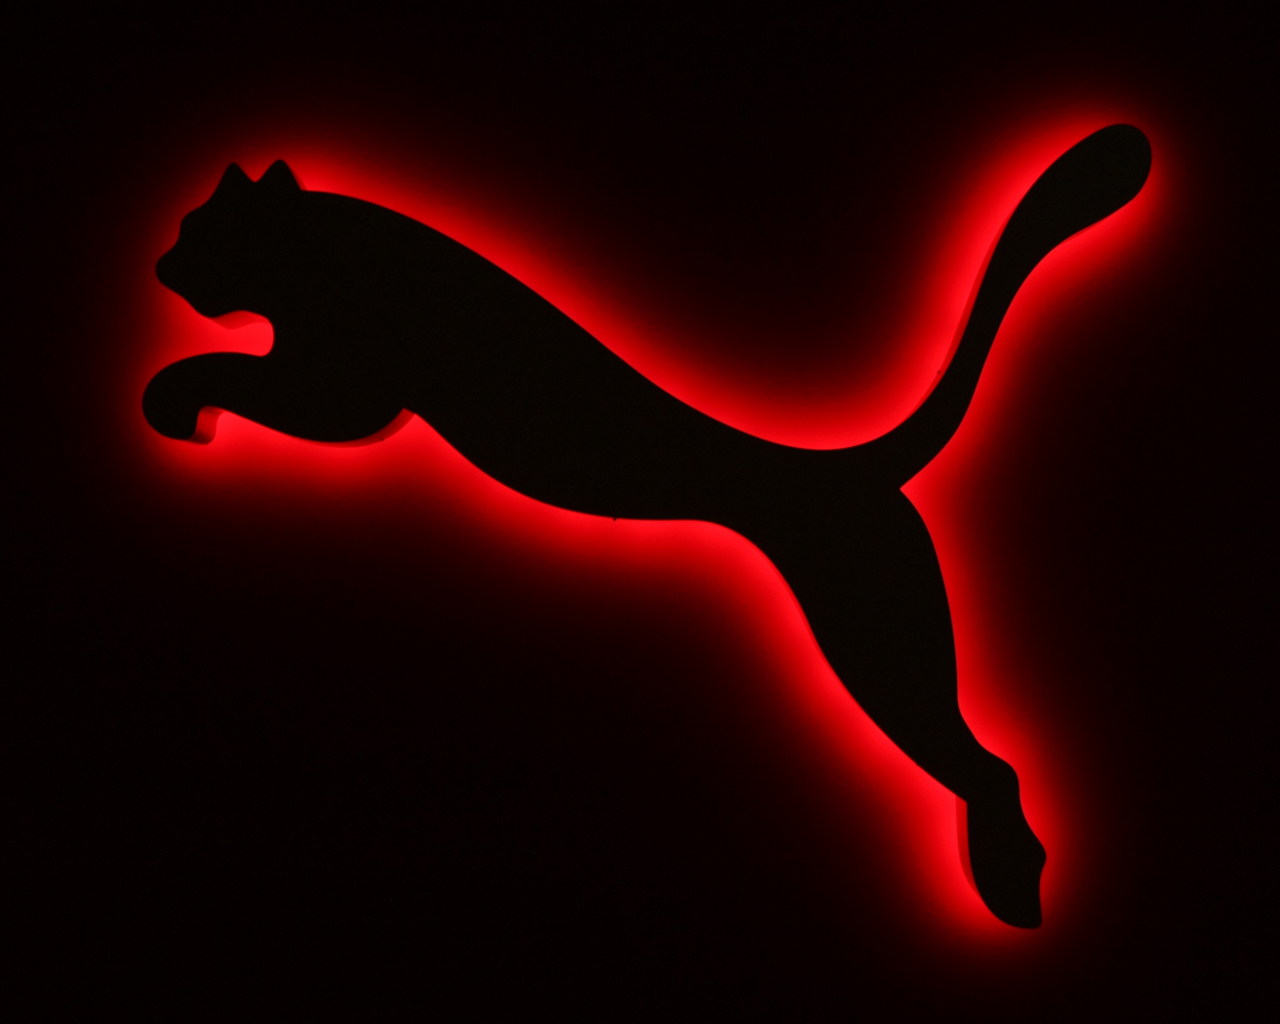 Puma Full Hd Wallpapers Wallpapers Full Hd